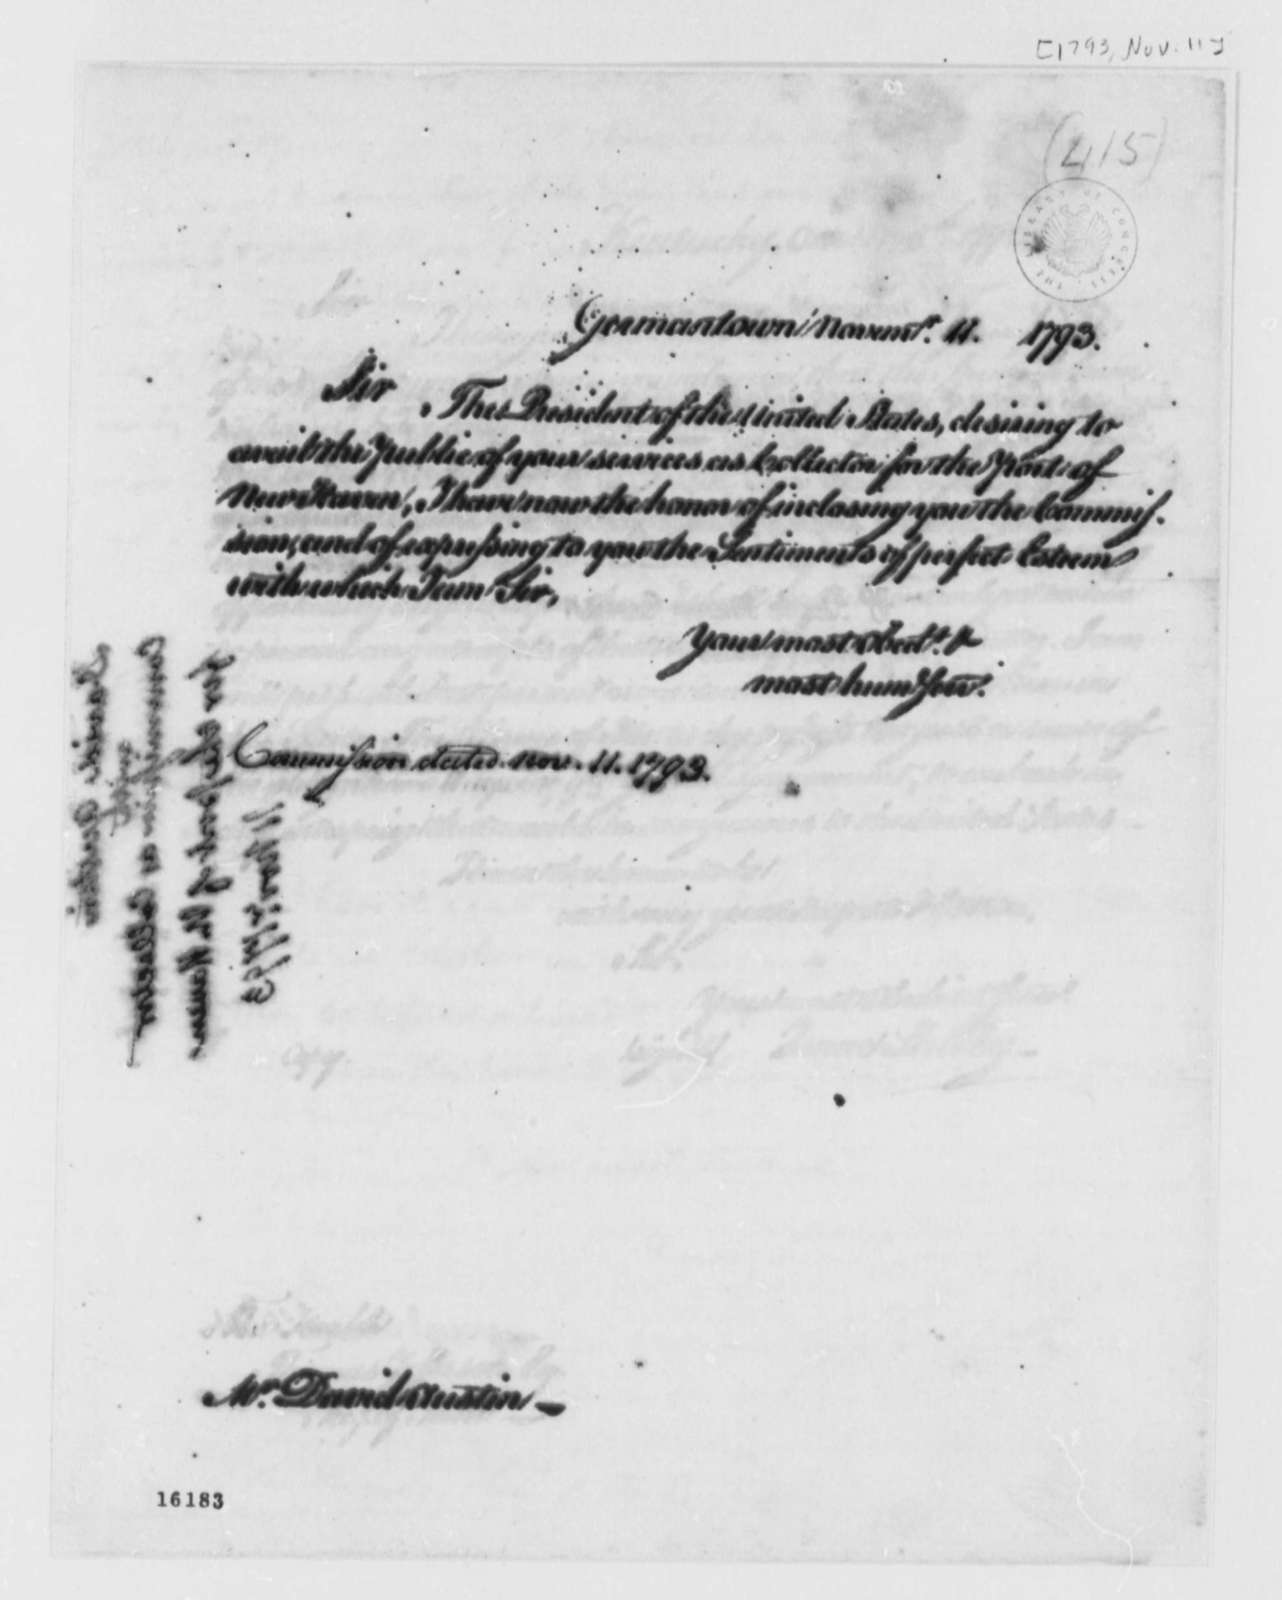 Thomas Jefferson to David Austin, November 11, 1793, Commission